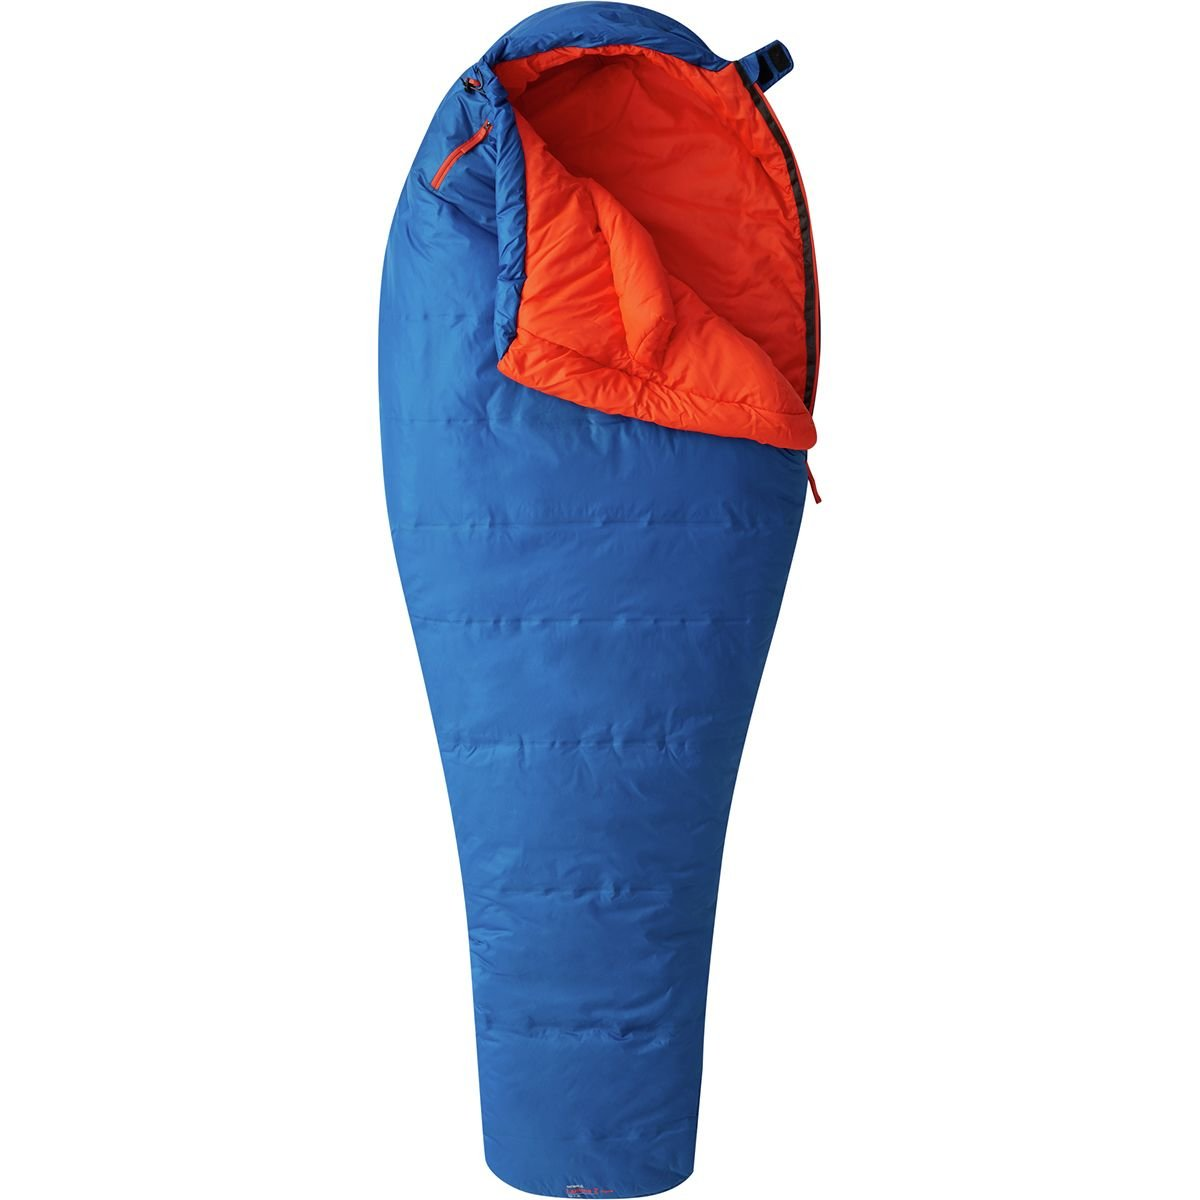 An image of Mountain Hardwear Lamina Z Flame Men's 20 Degree Polyester Sleeping Bag | Expert Camper